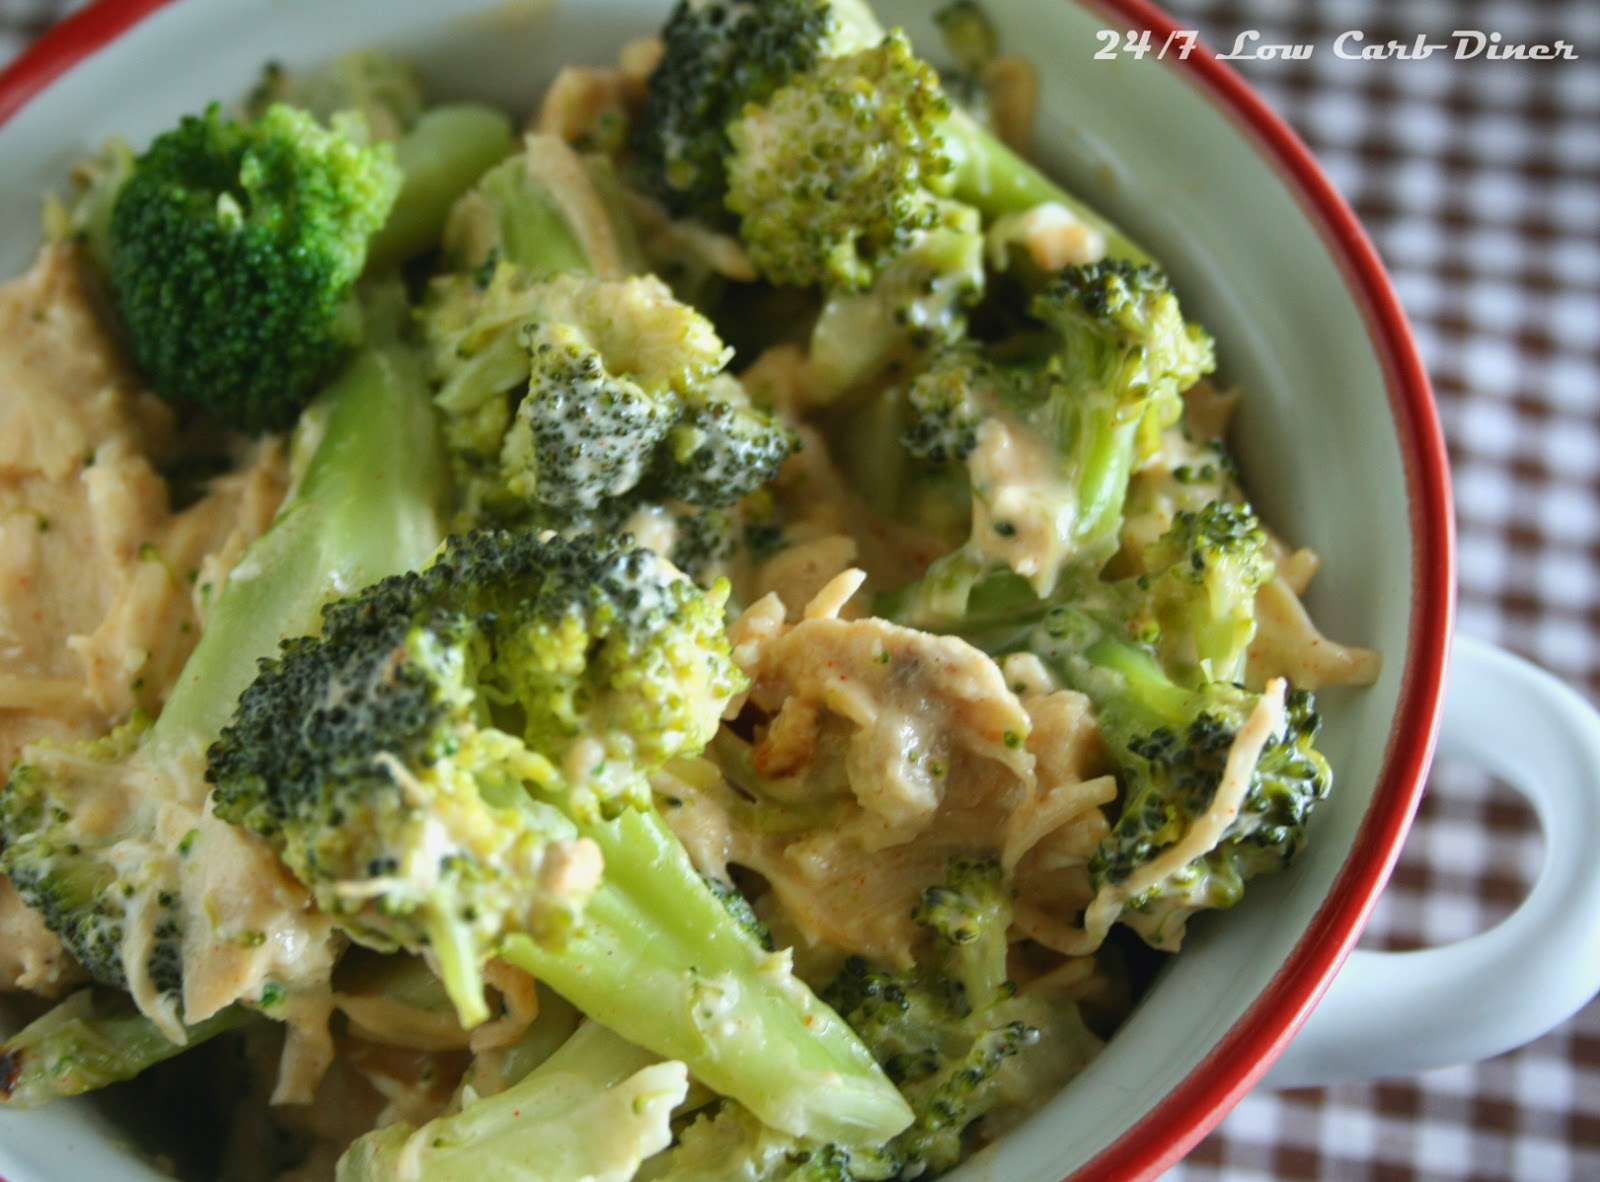 Chicken and broccoli casserole - photo#4